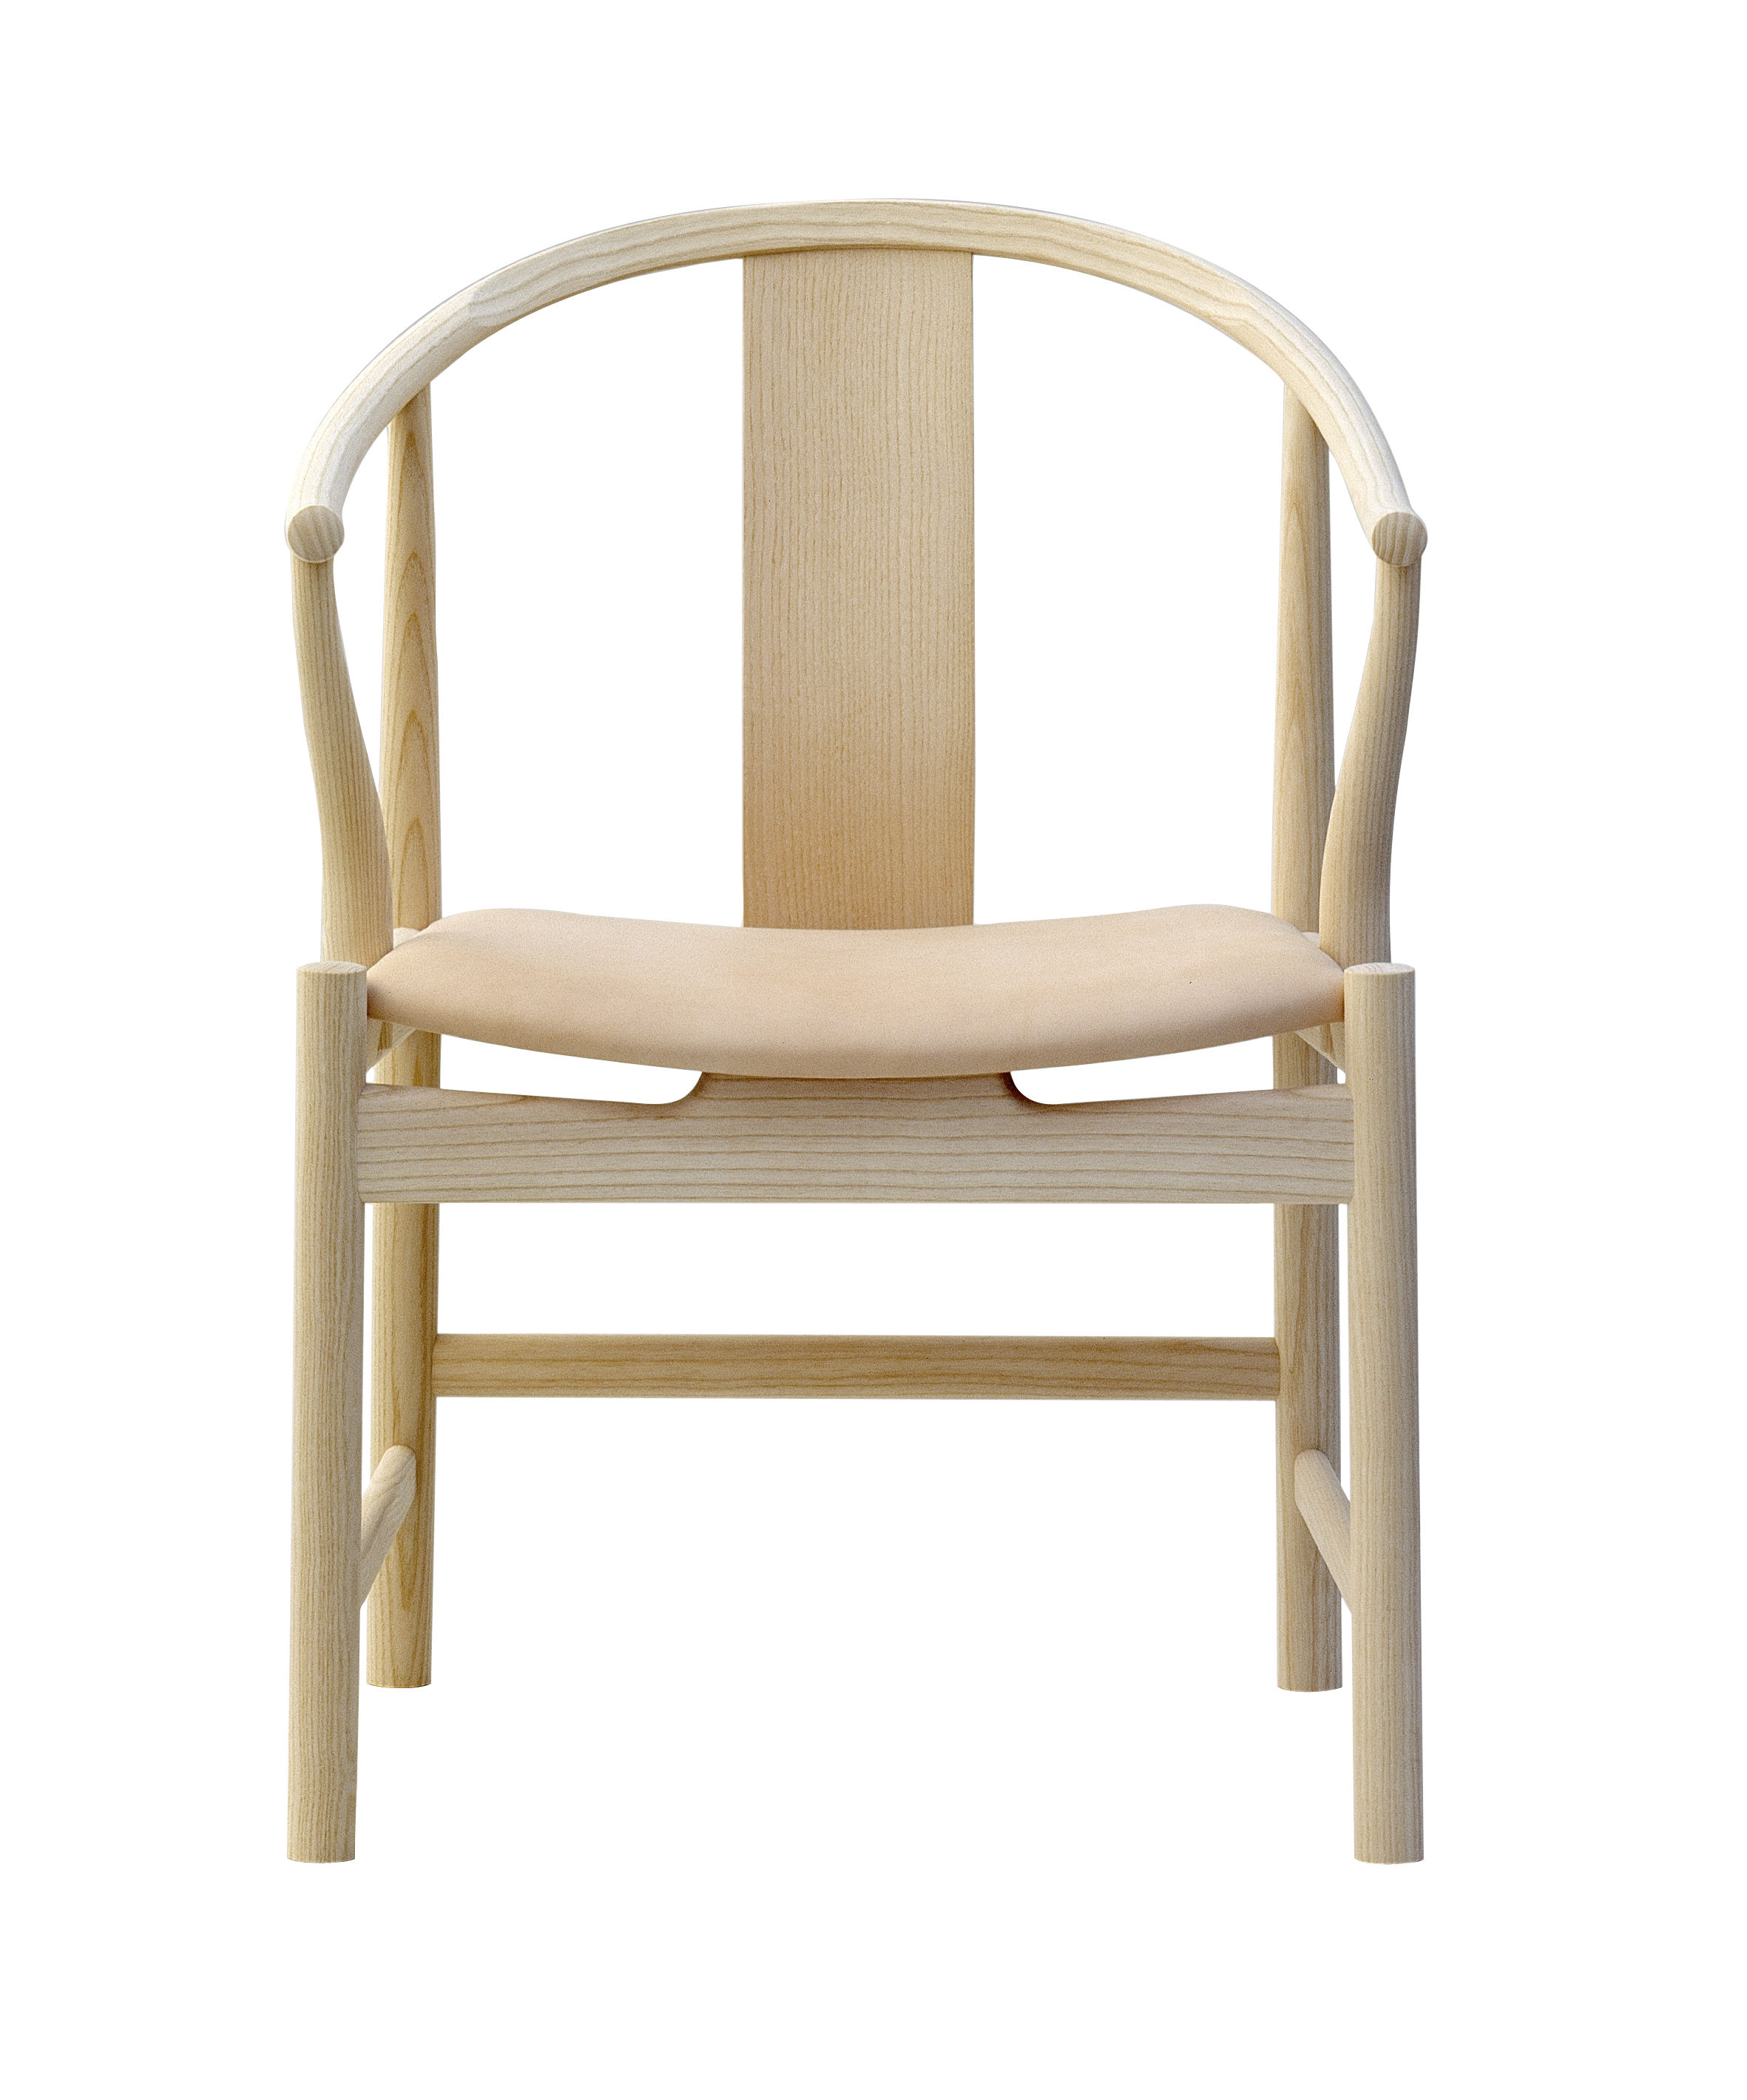 at kunsthndvrkets spring exhibition in 1943 wegner presented his first version of a chair inspired chinese inspired furniture